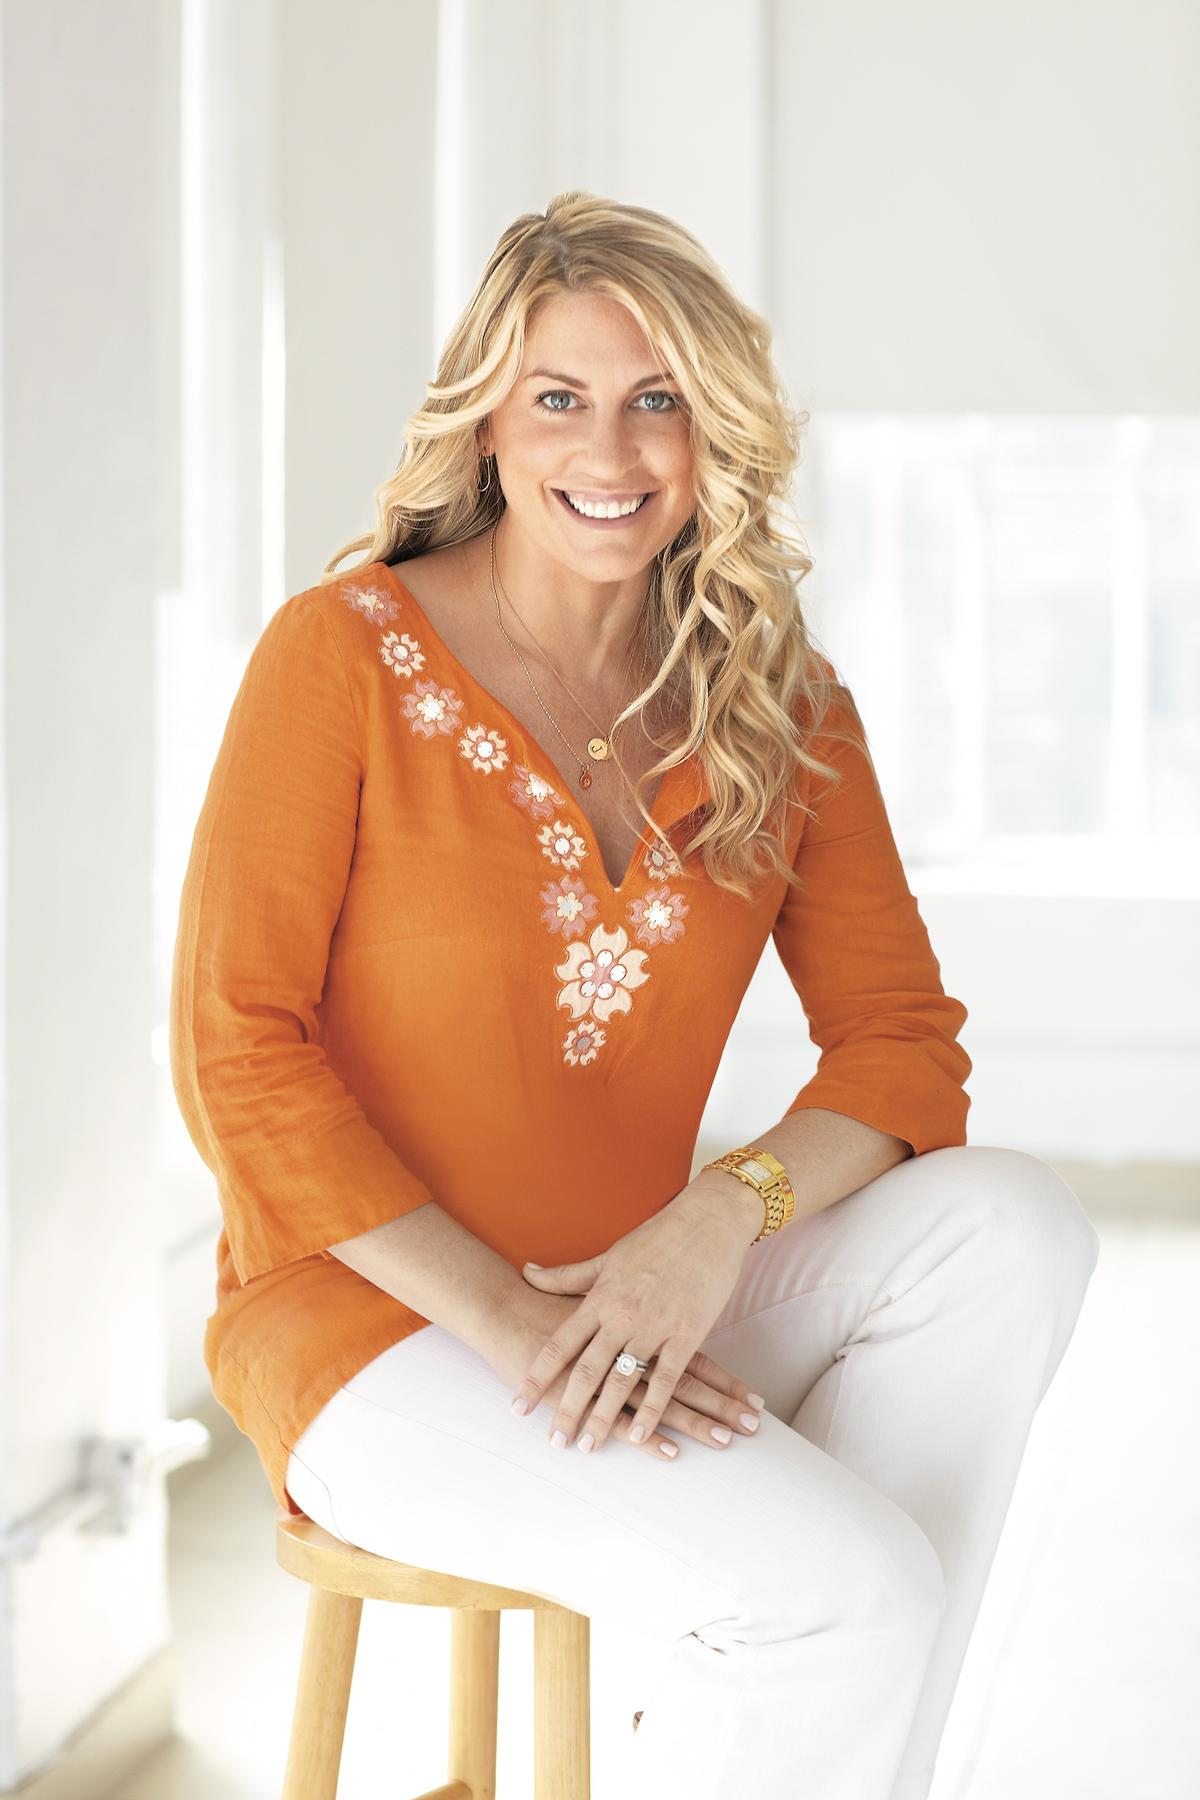 Julie Keller Callaghan was previously editor in chief of American Spa magazine